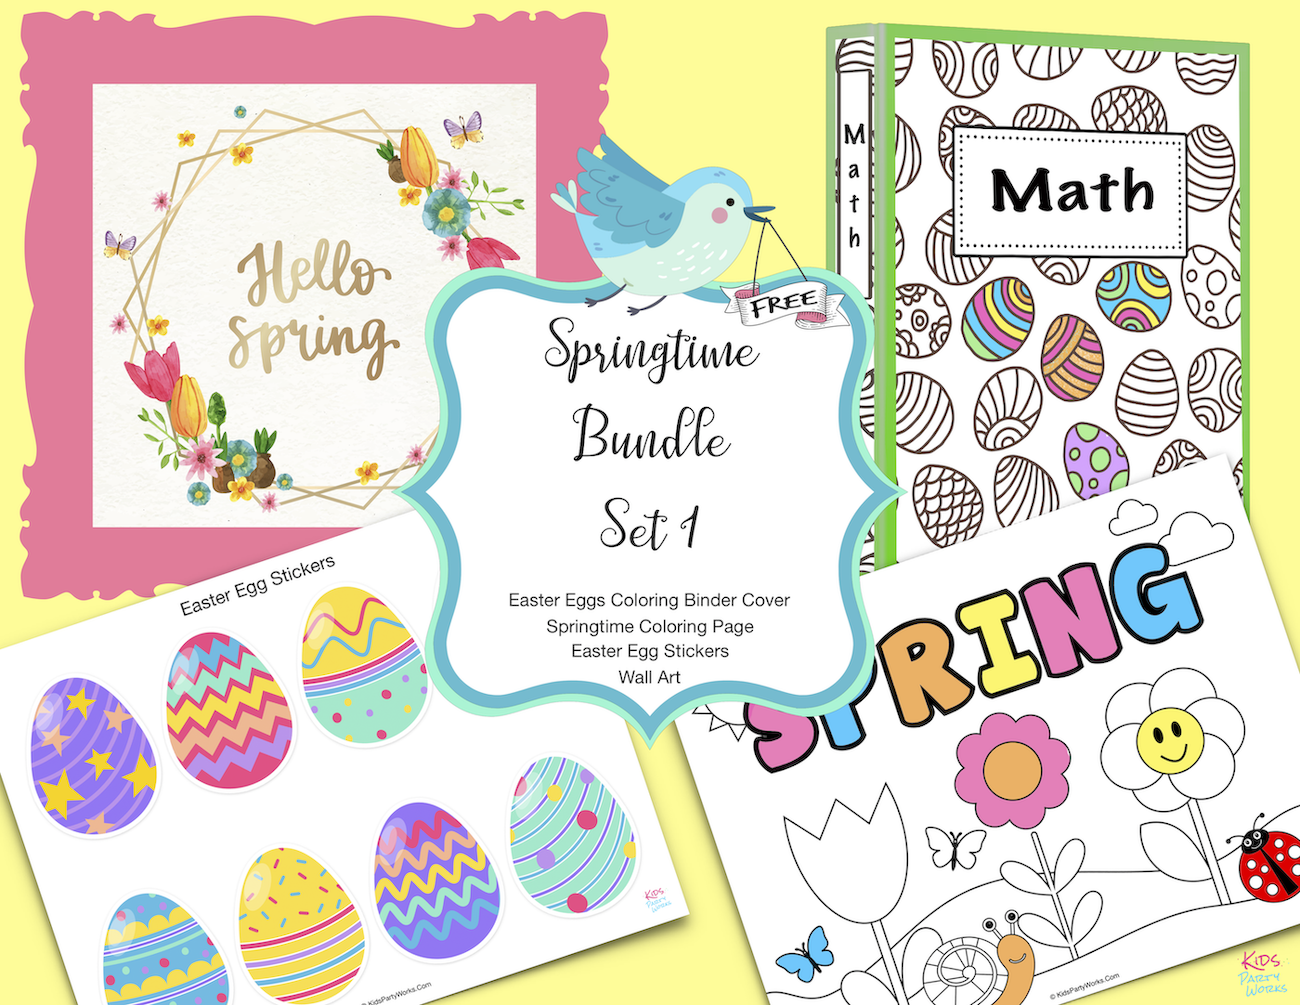 Free Easter Printables for kids from KidsPartyWorks.Com. Come get this free set which includes a Book Binder, Coloring Page, Easter Stickers and Wall Art.